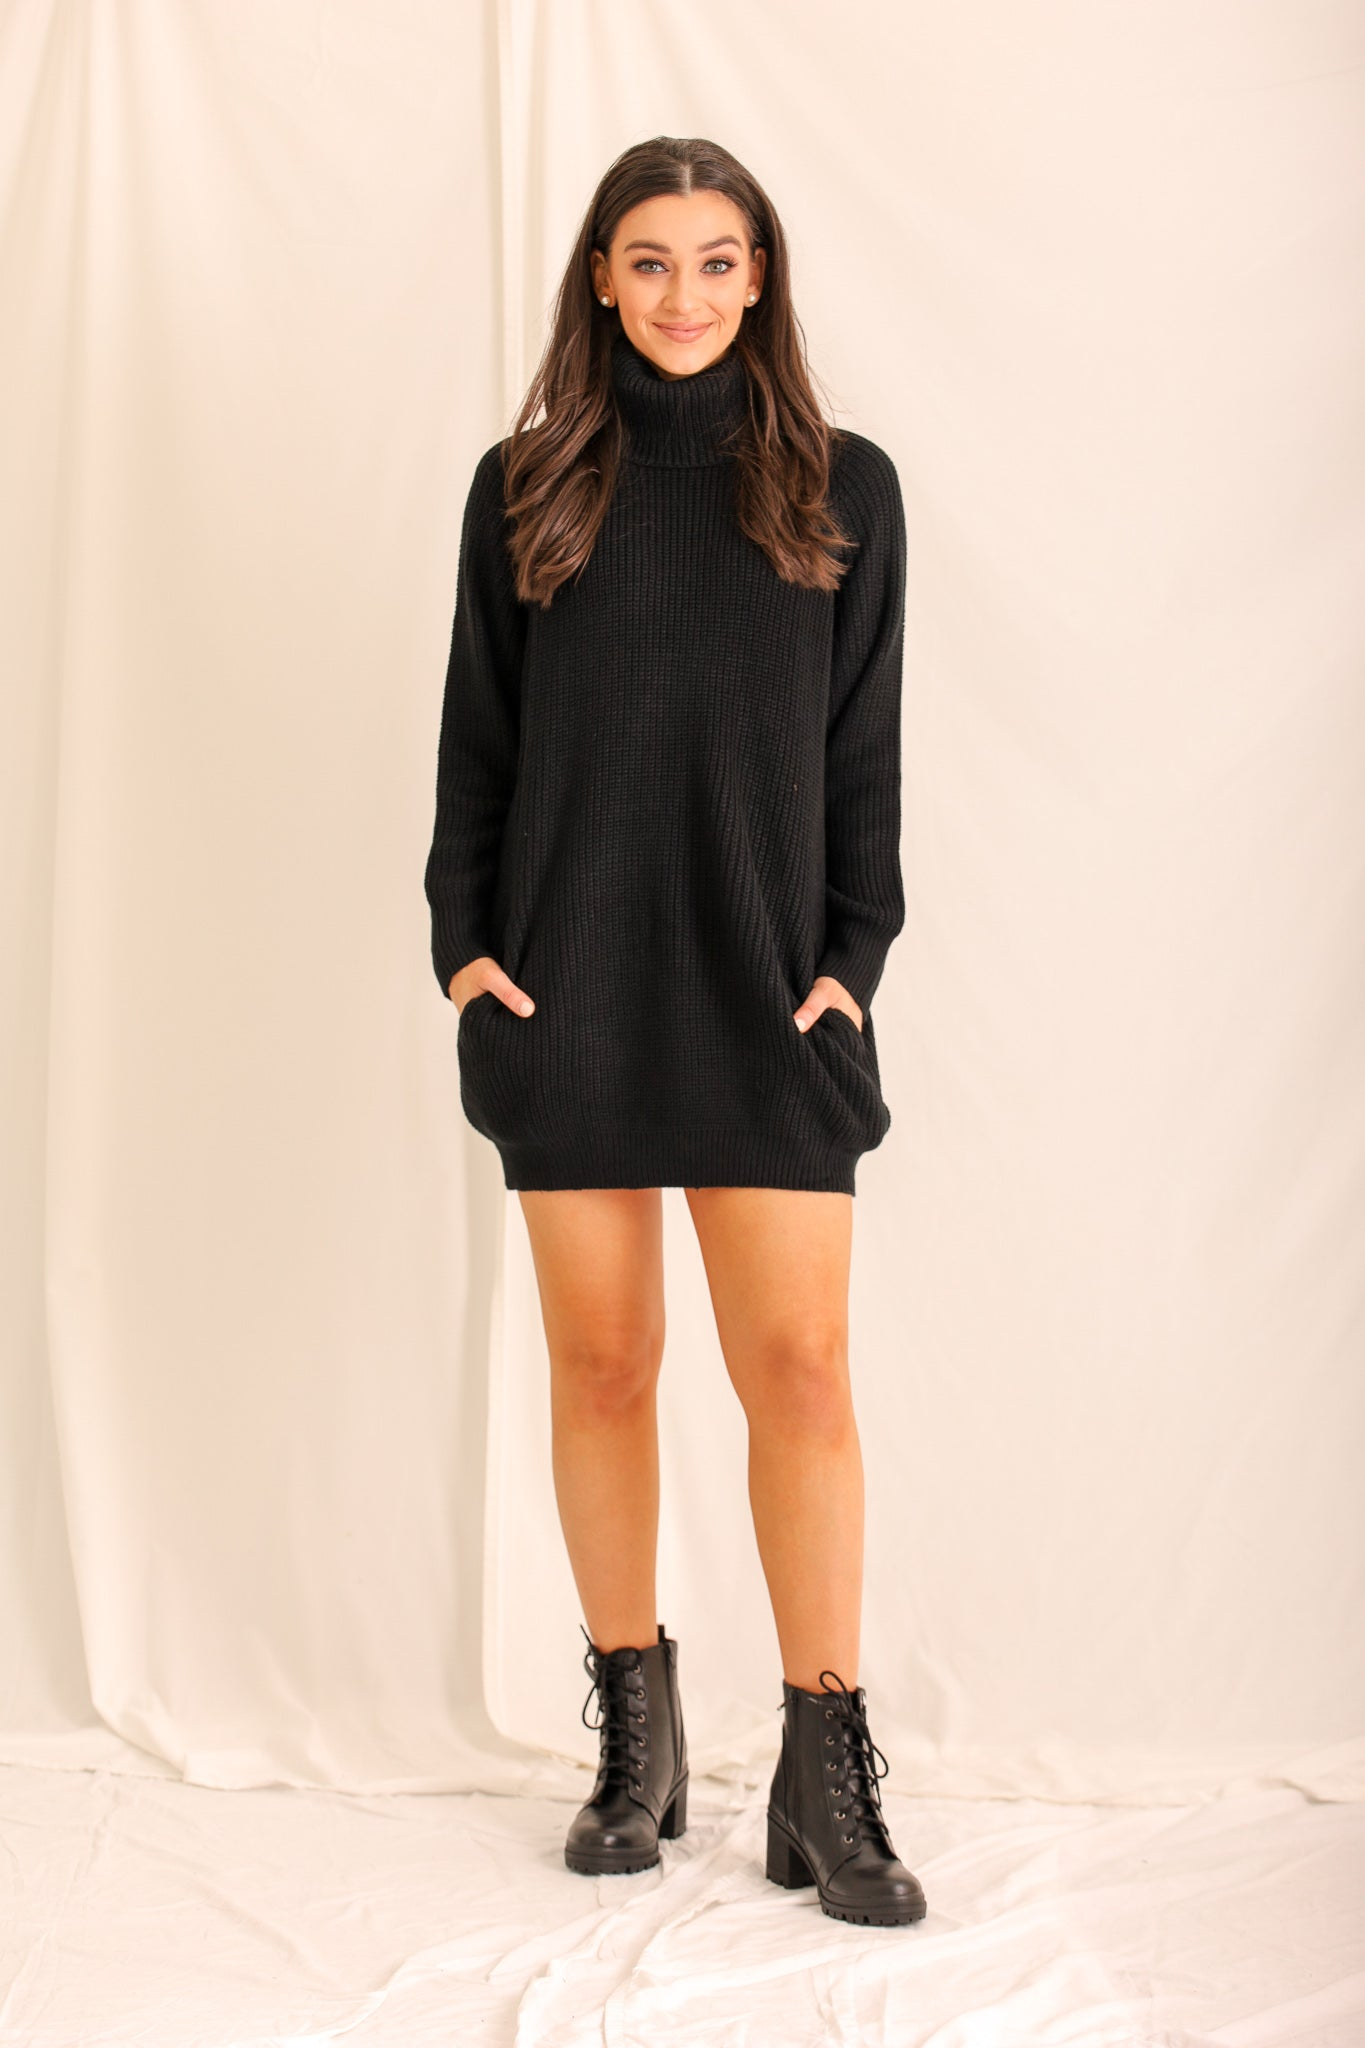 Chic But Cozy Black Sweater Dress